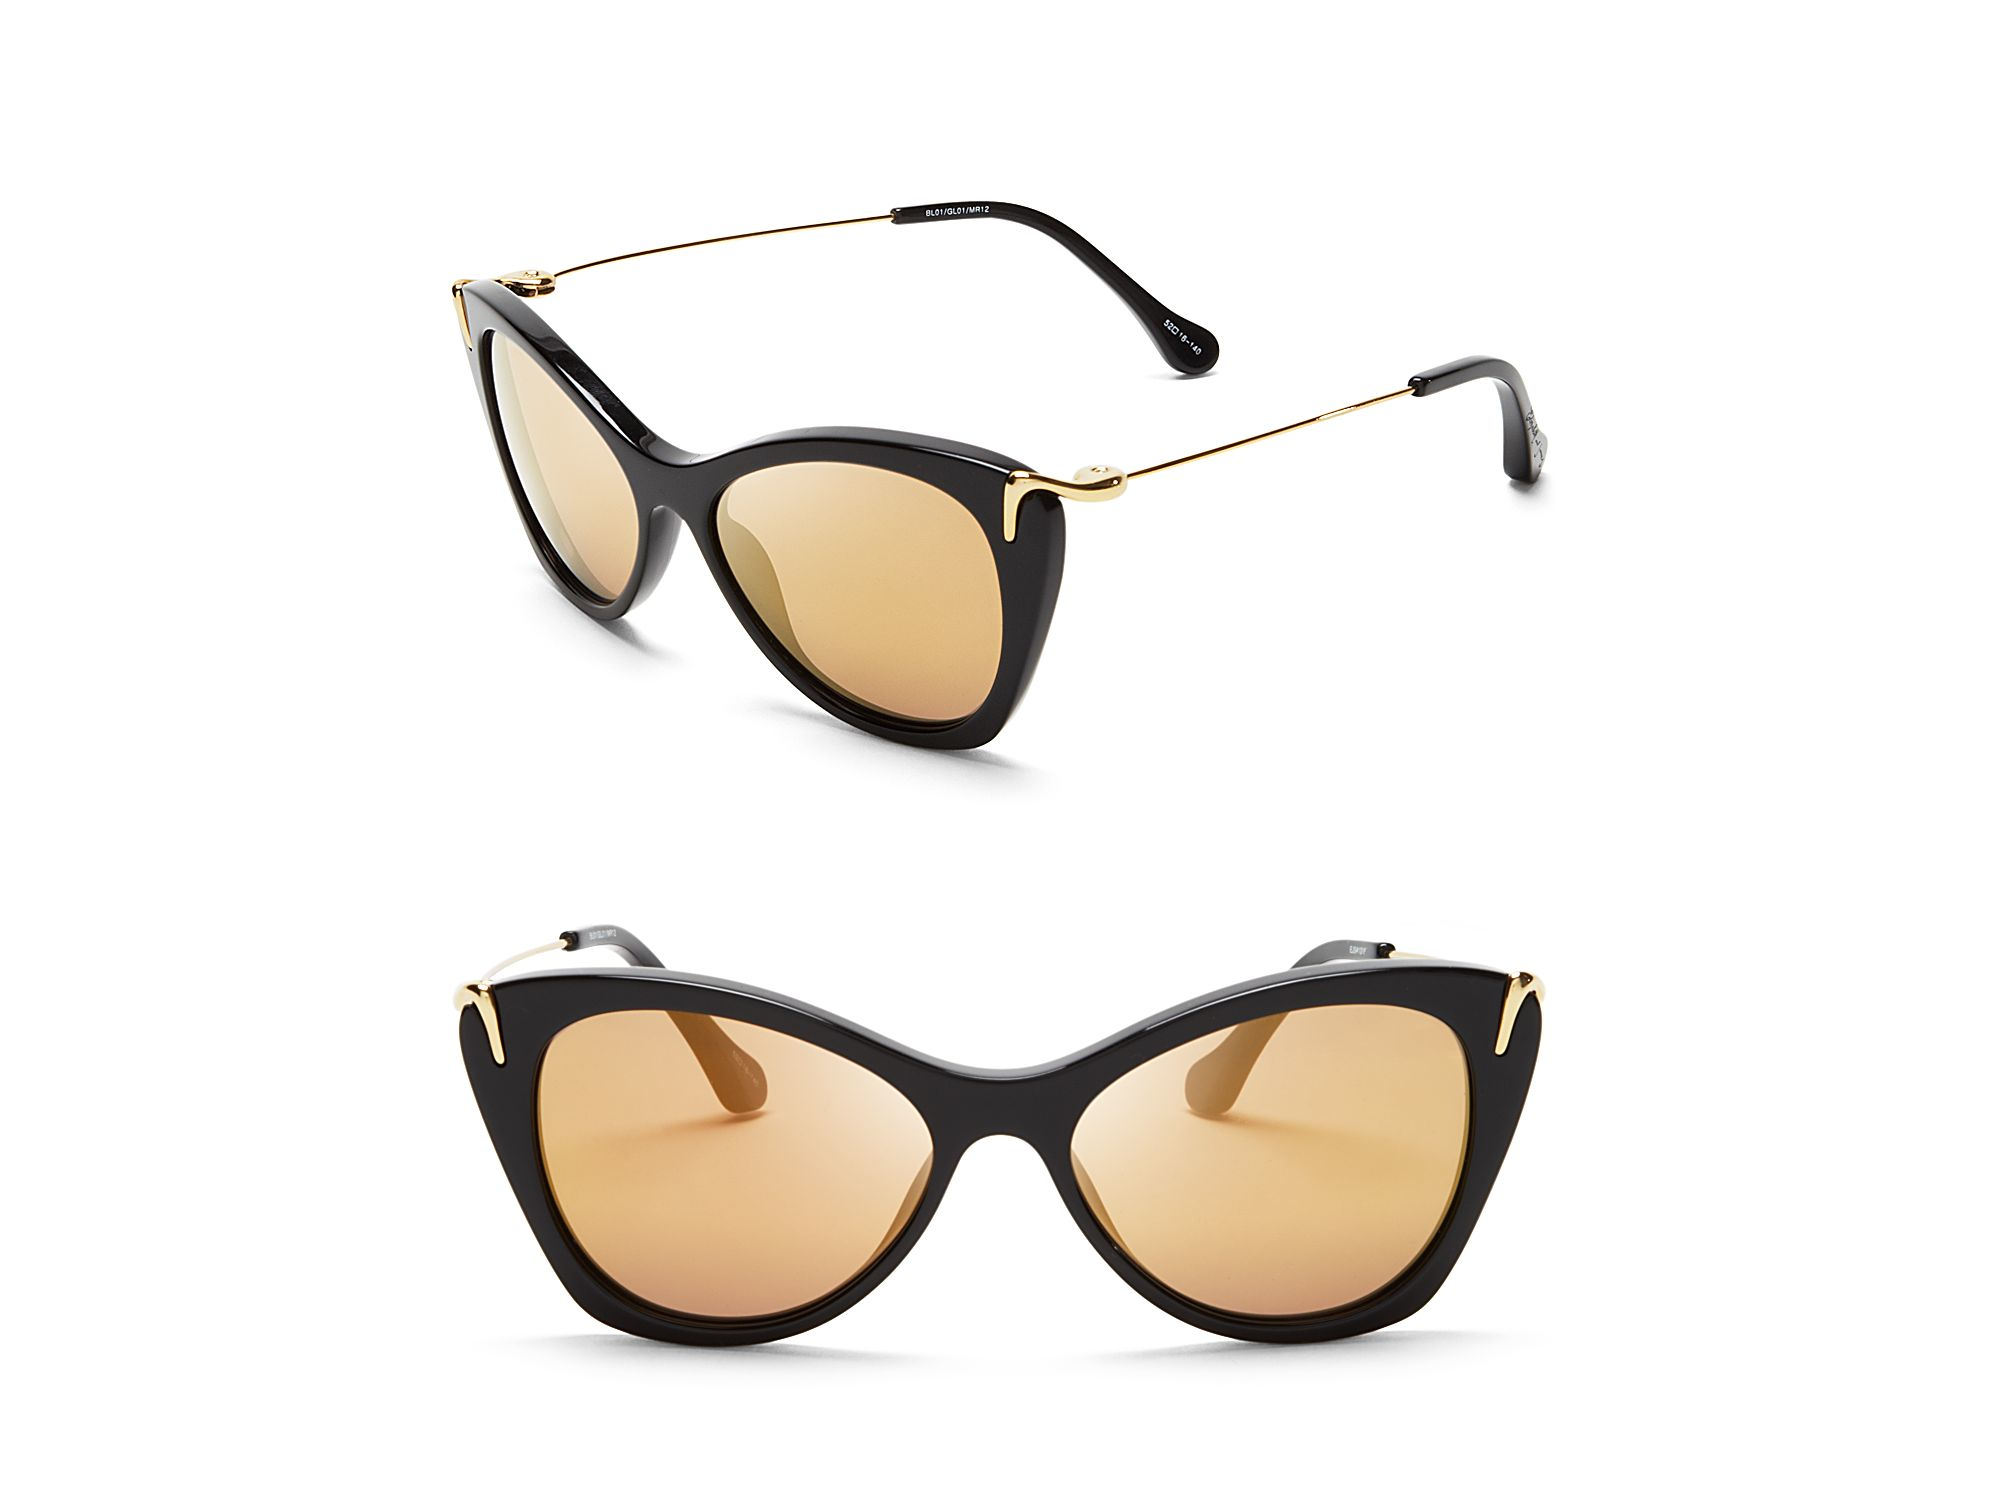 5f69f50cf7 Lyst - Elizabeth And James Fillmore Mirrored Cat Eye Sunglasses in Black